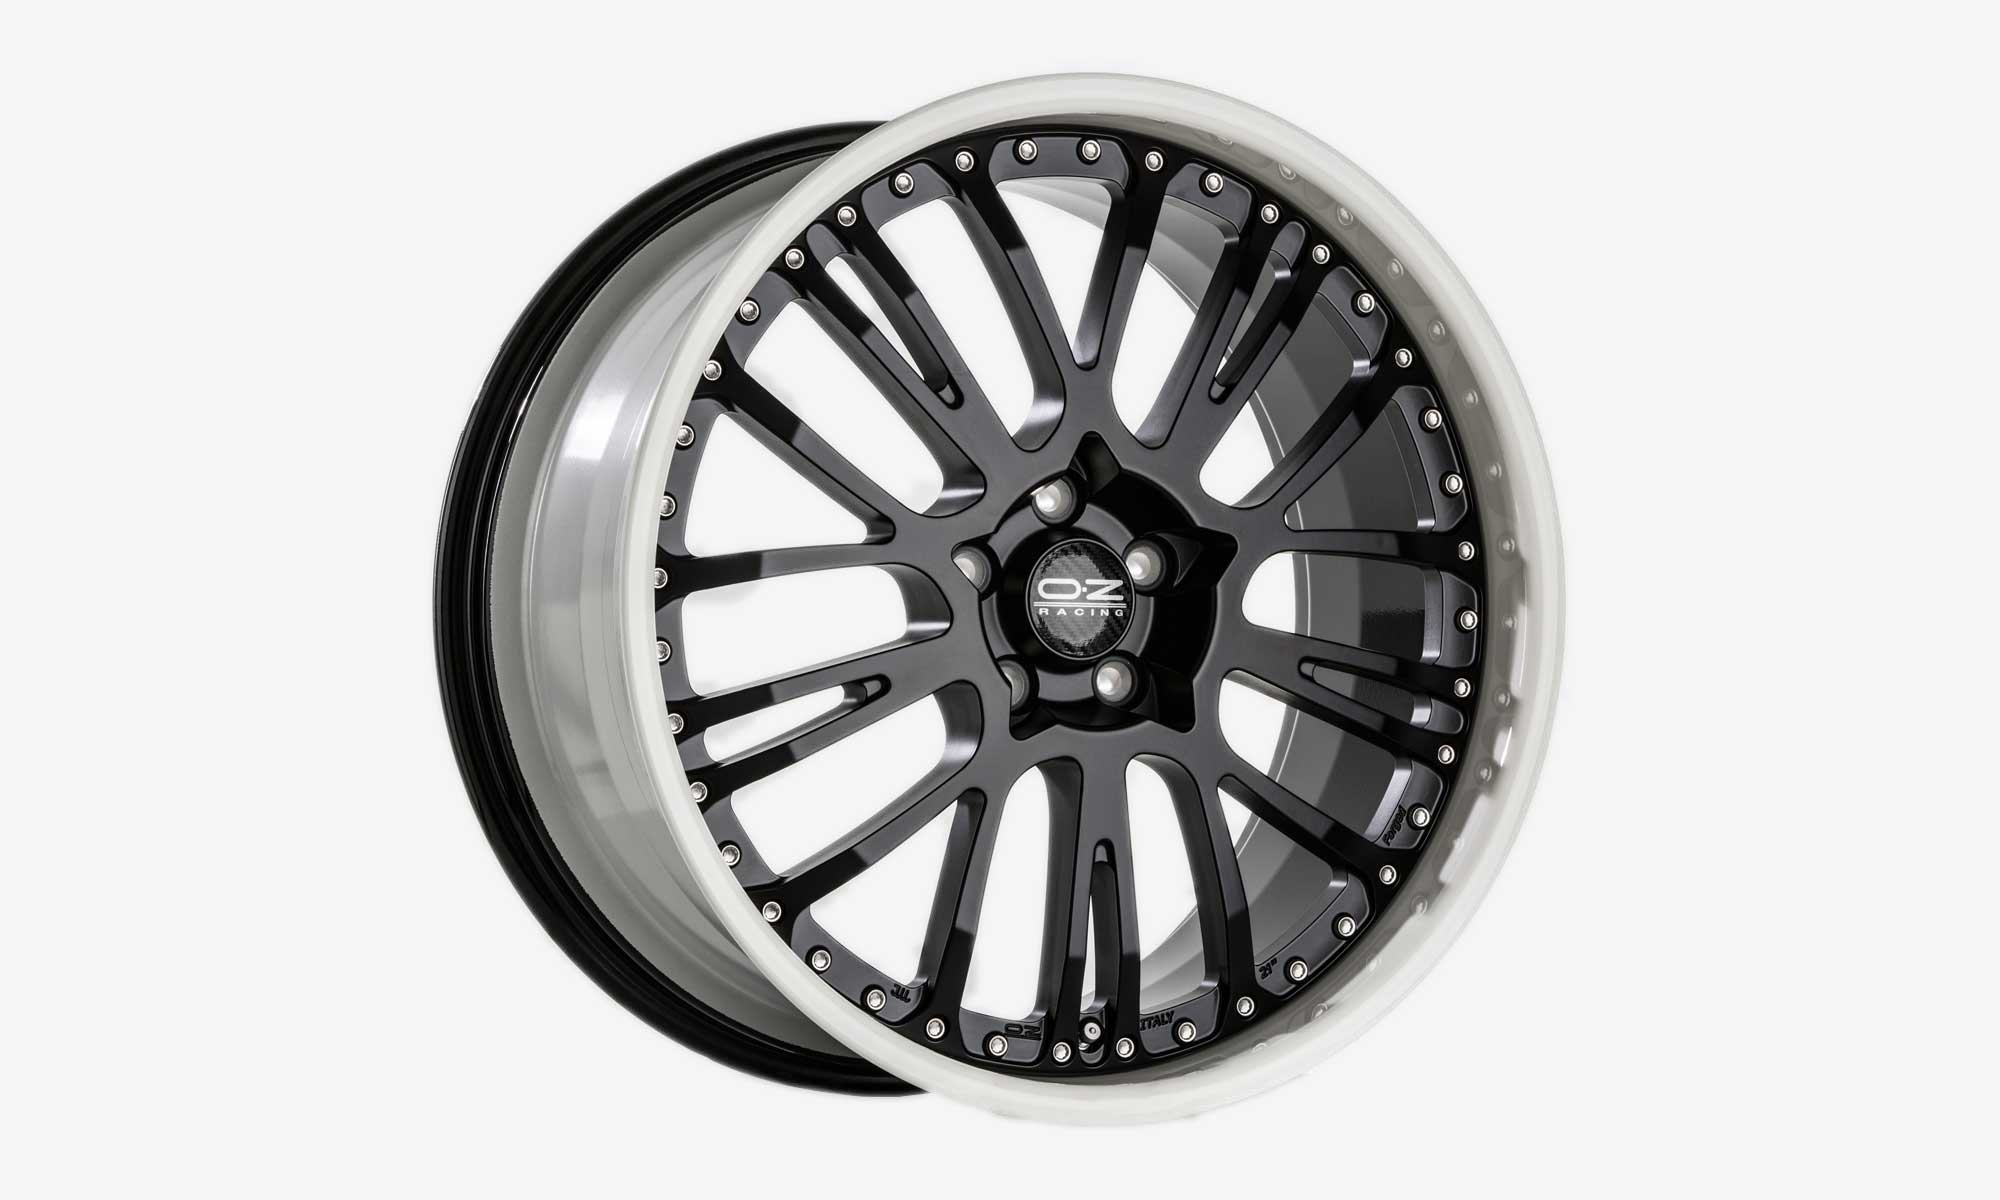 OZ Light alloy wheels Botticelli III for Maserati Ghibli EVO